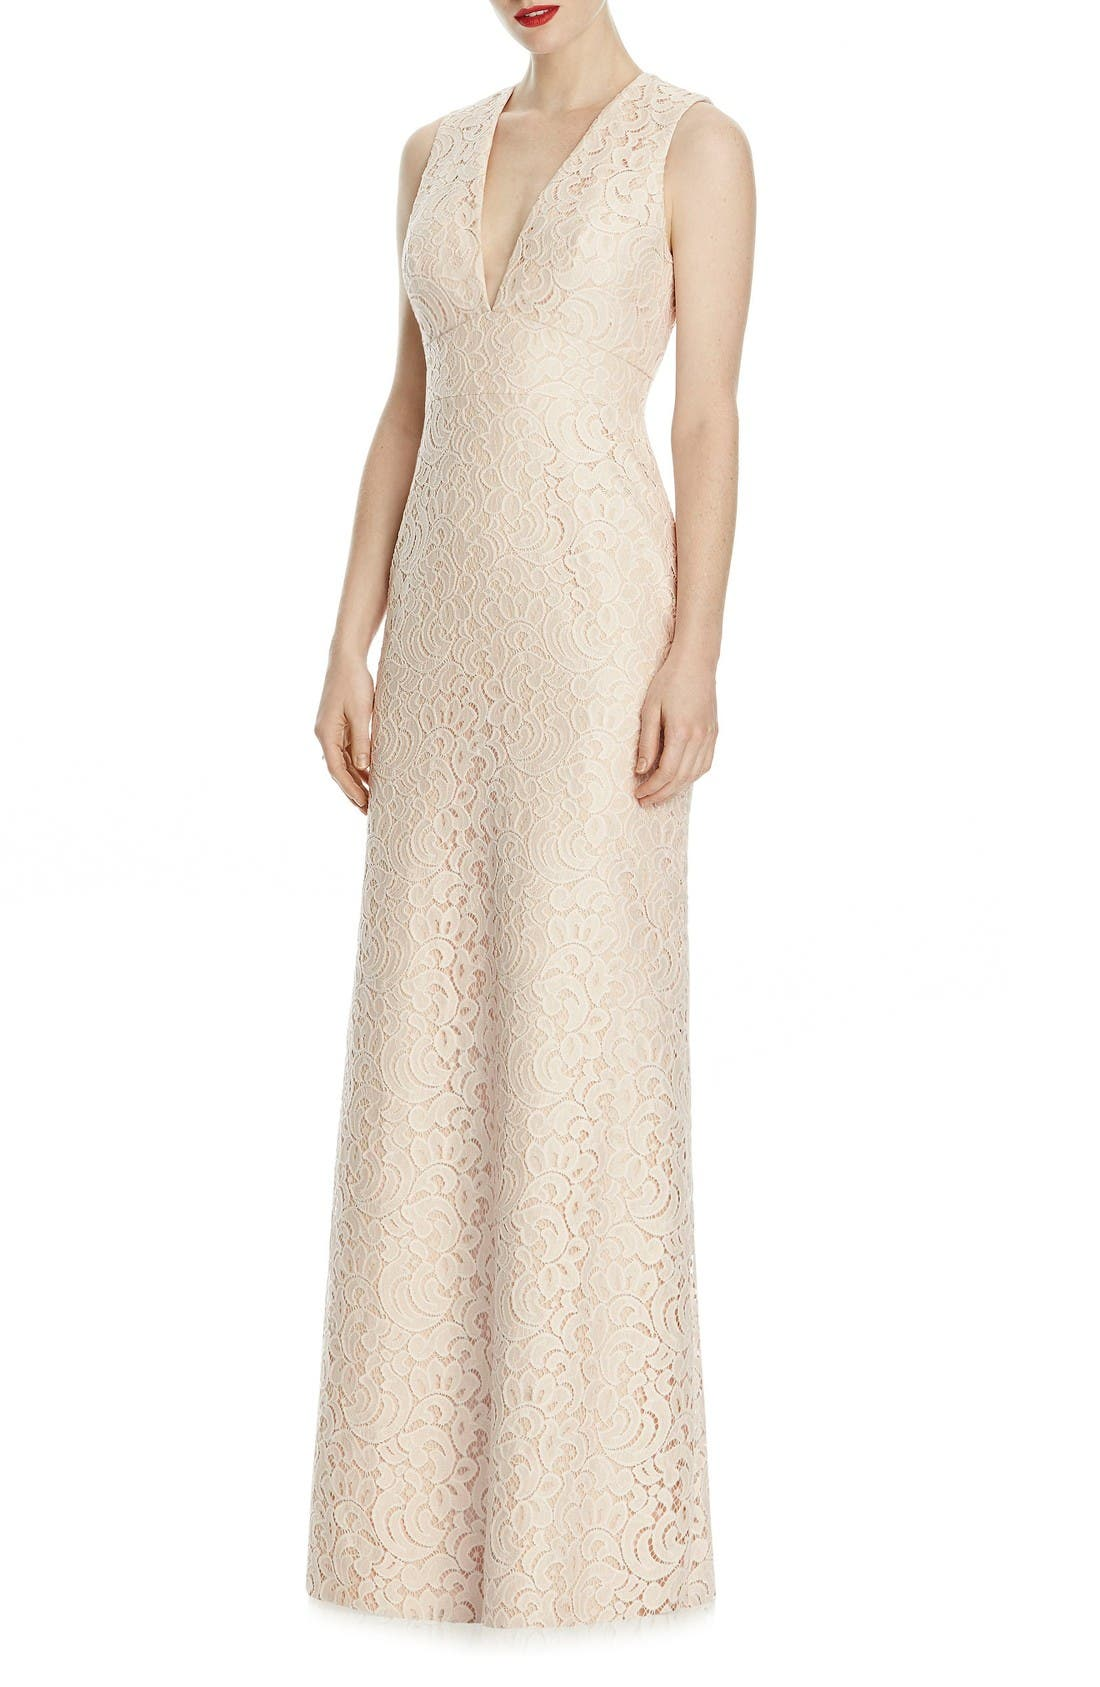 Lela Rose Bridesmaid V-Neck Lace A-Line Gown